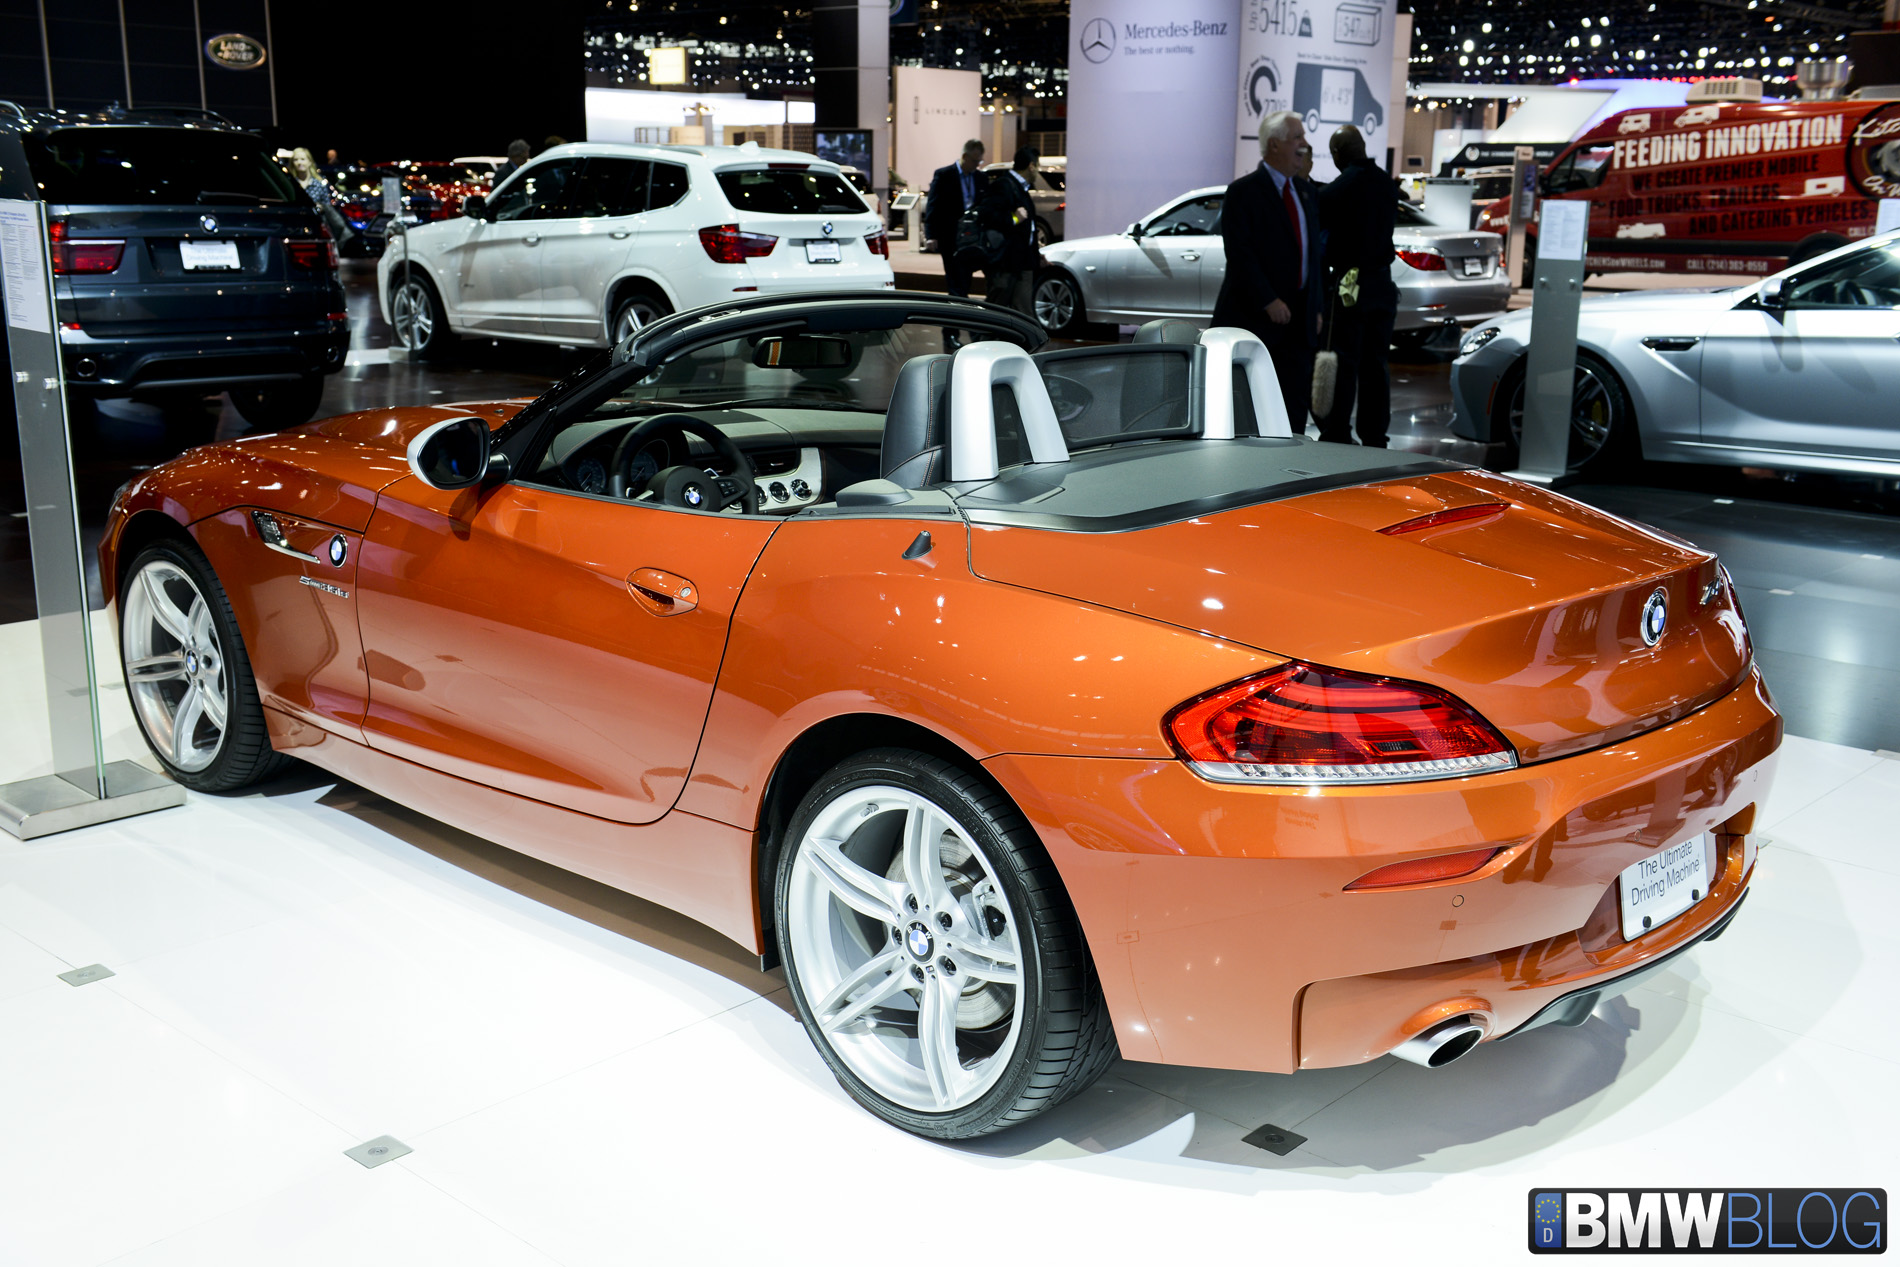 2013 Chicago Auto Show Bmw Z4 Facelift In Valencia Orange